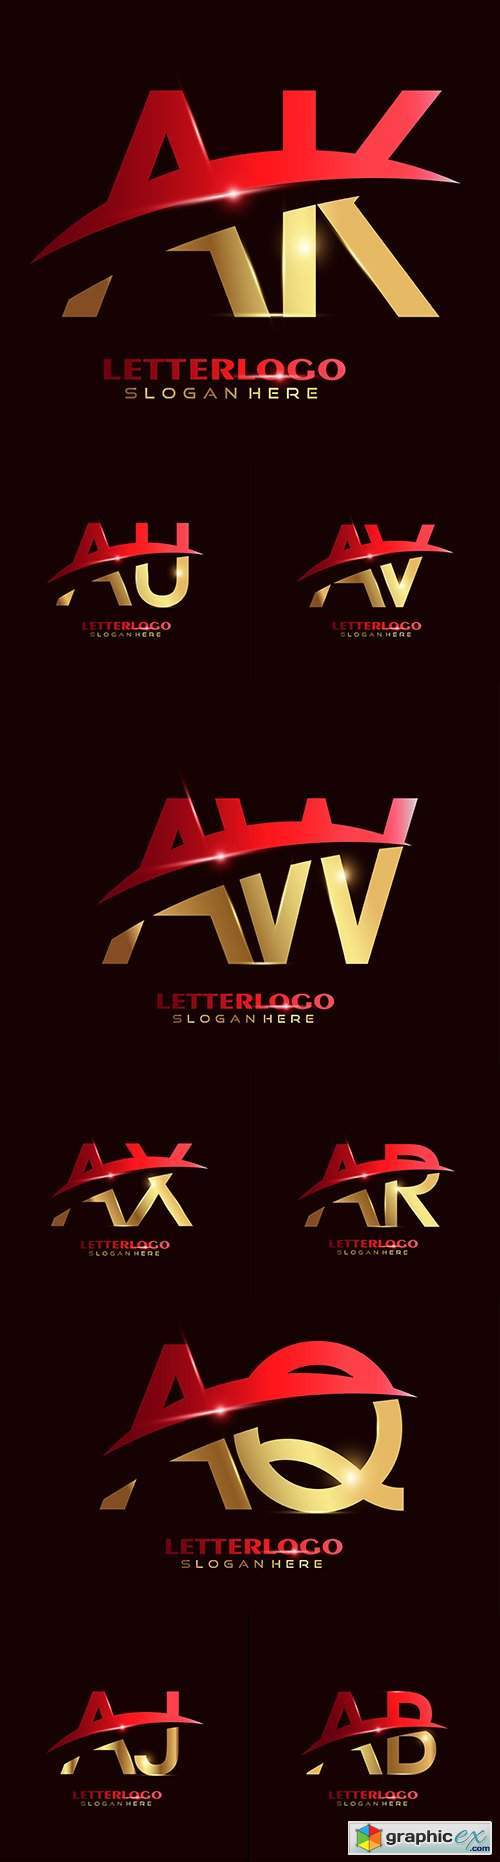 Initial letter and Brand name company logos design